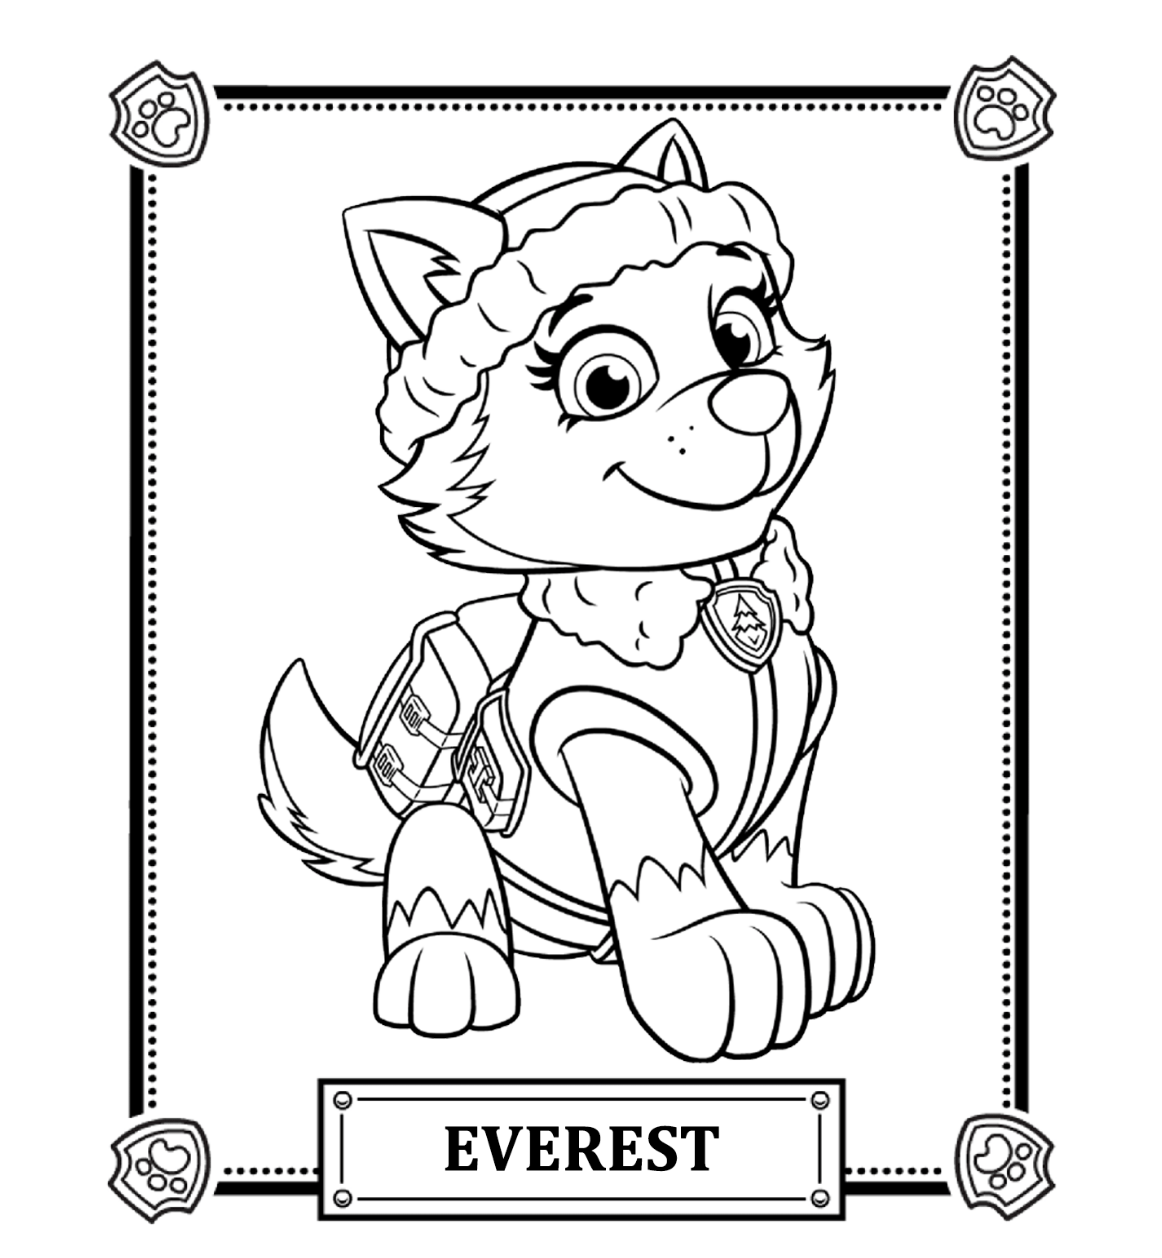 PAW Patrol Everest Coloring Pages … | Paw Partol | Pinte…